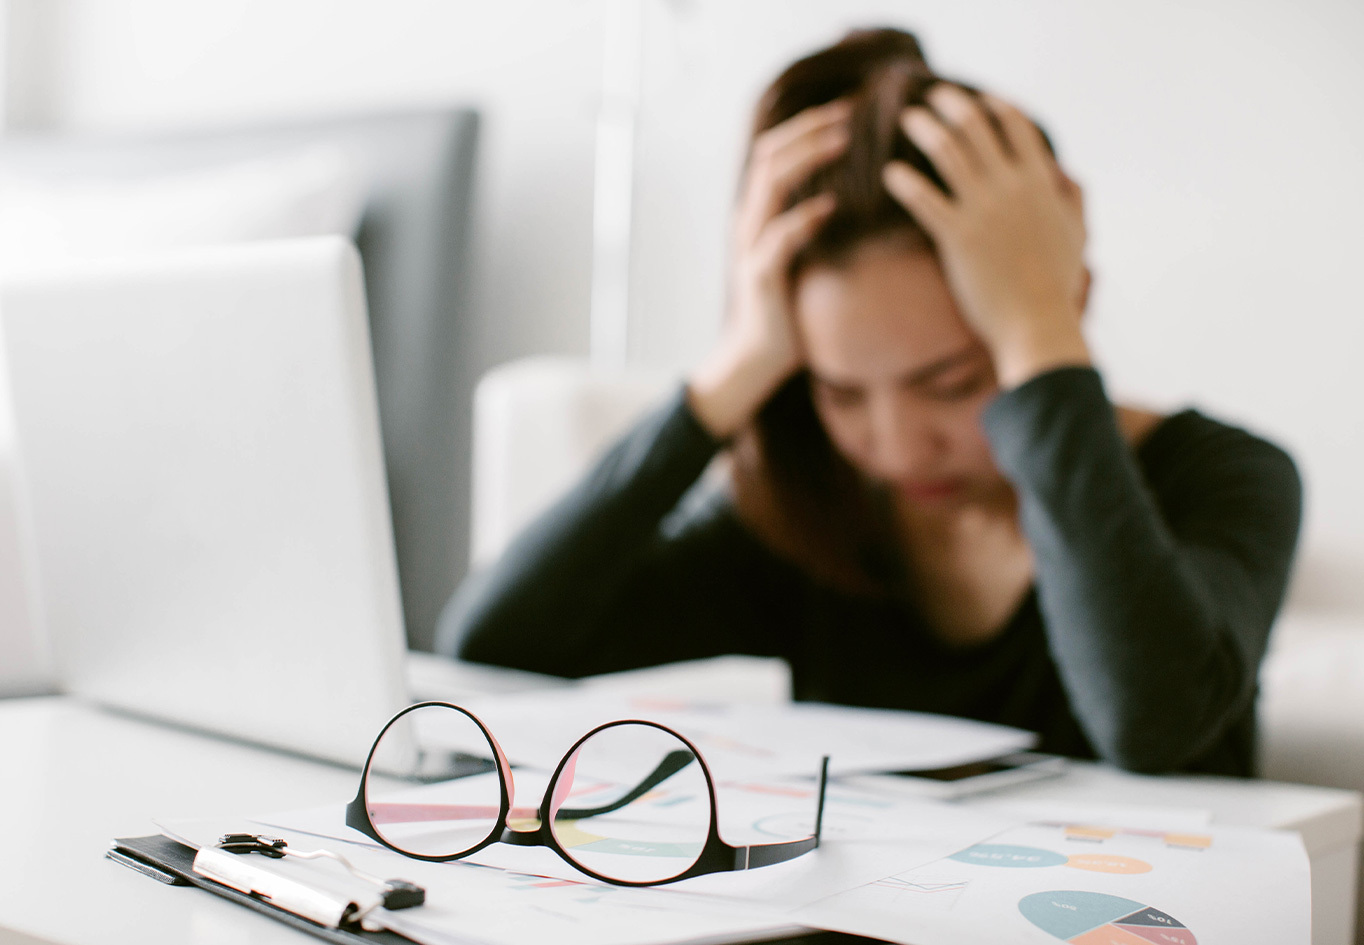 Bad Working Habits That Might Affect Your Career